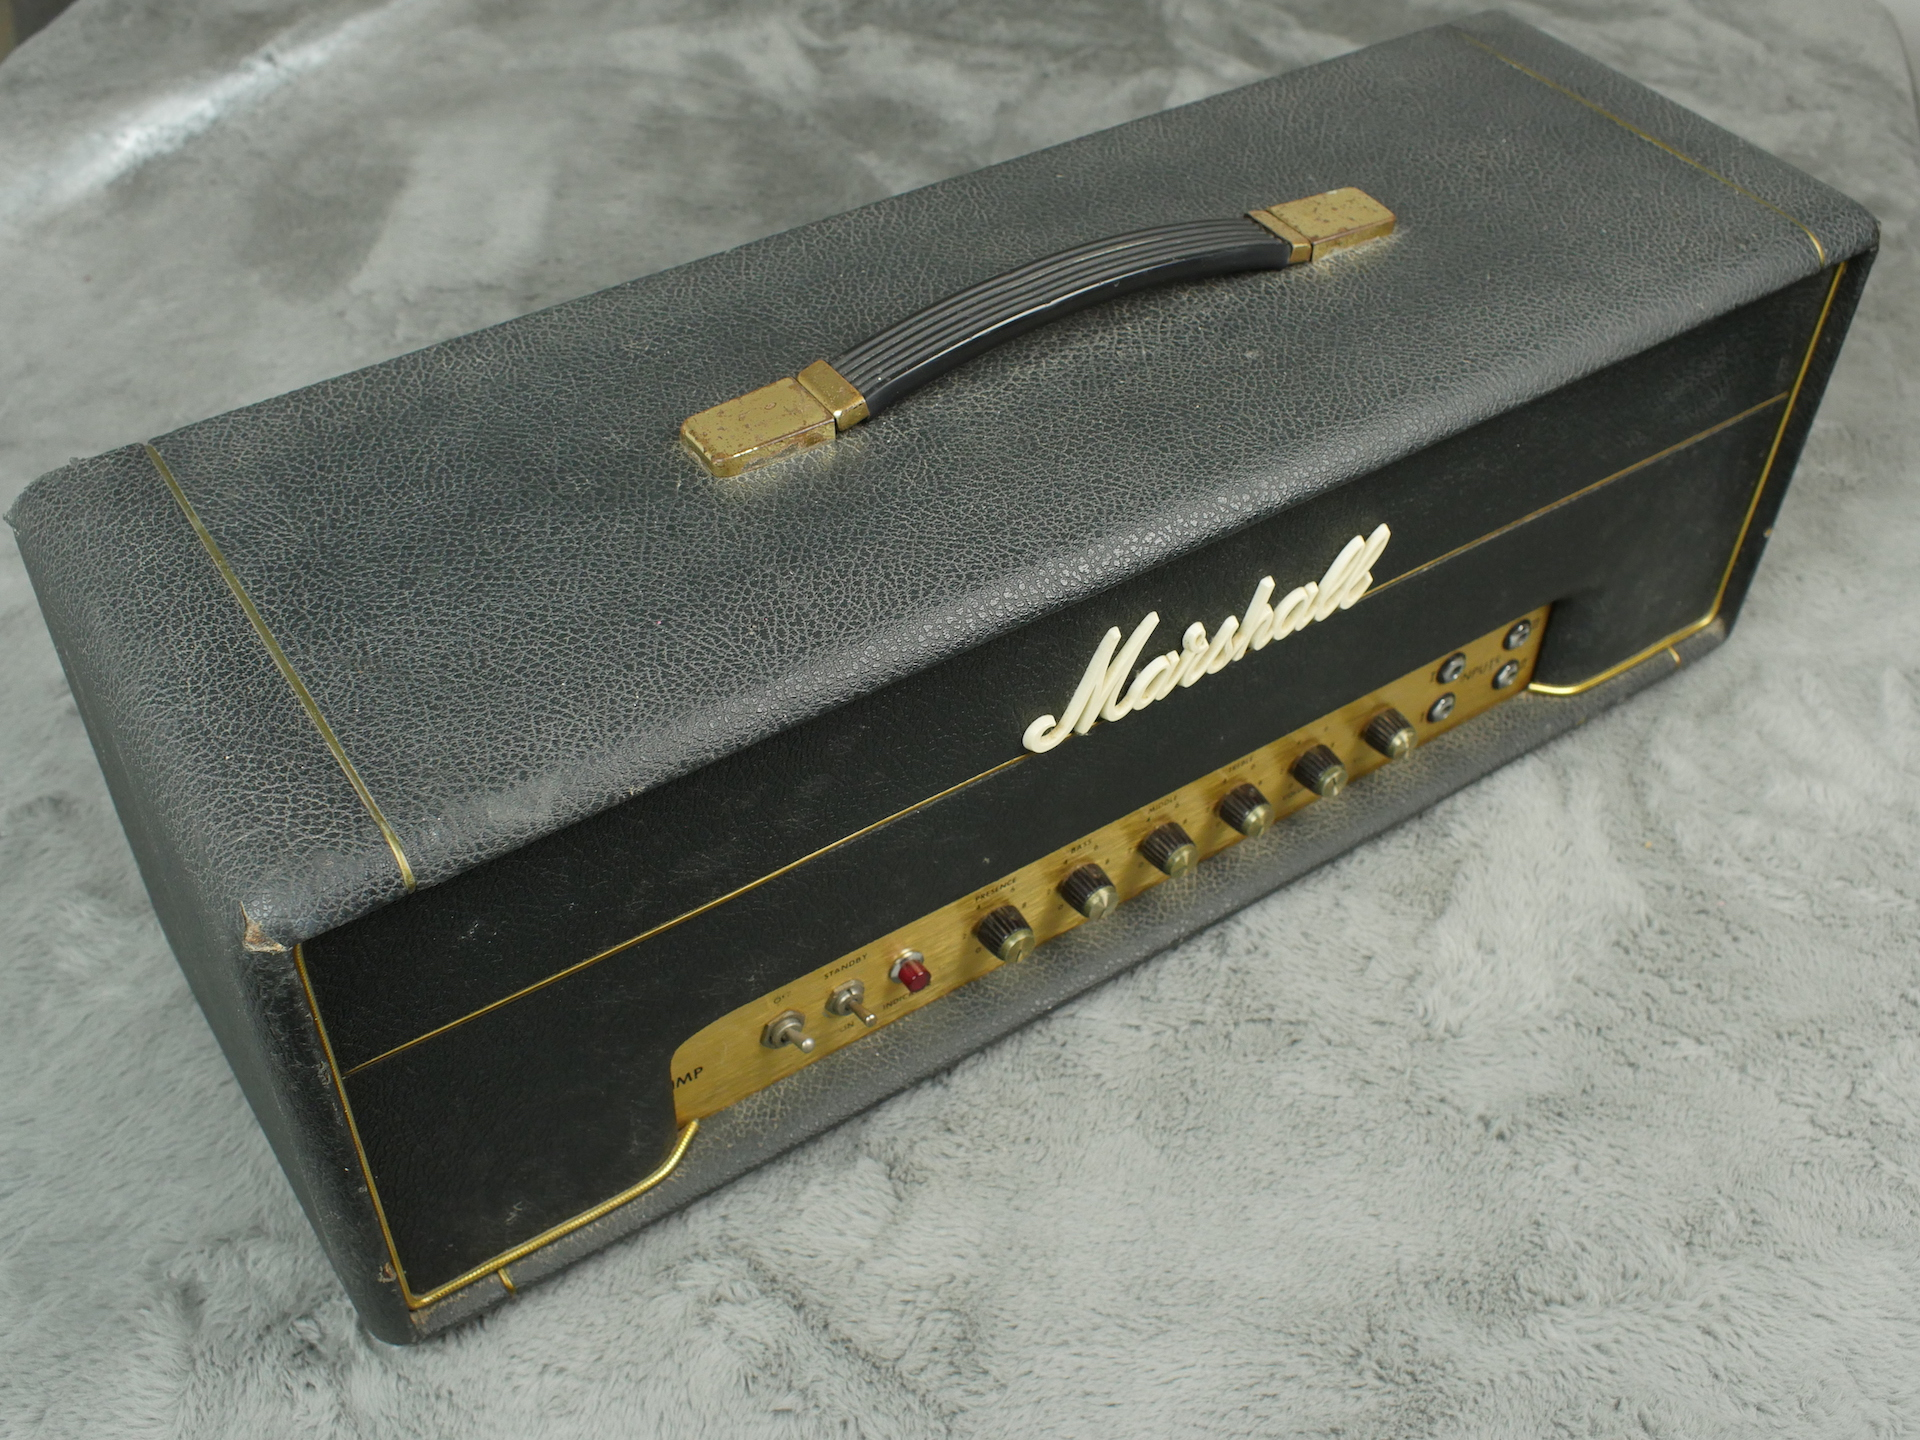 1971 Marshall JMP 50 watt Small Box